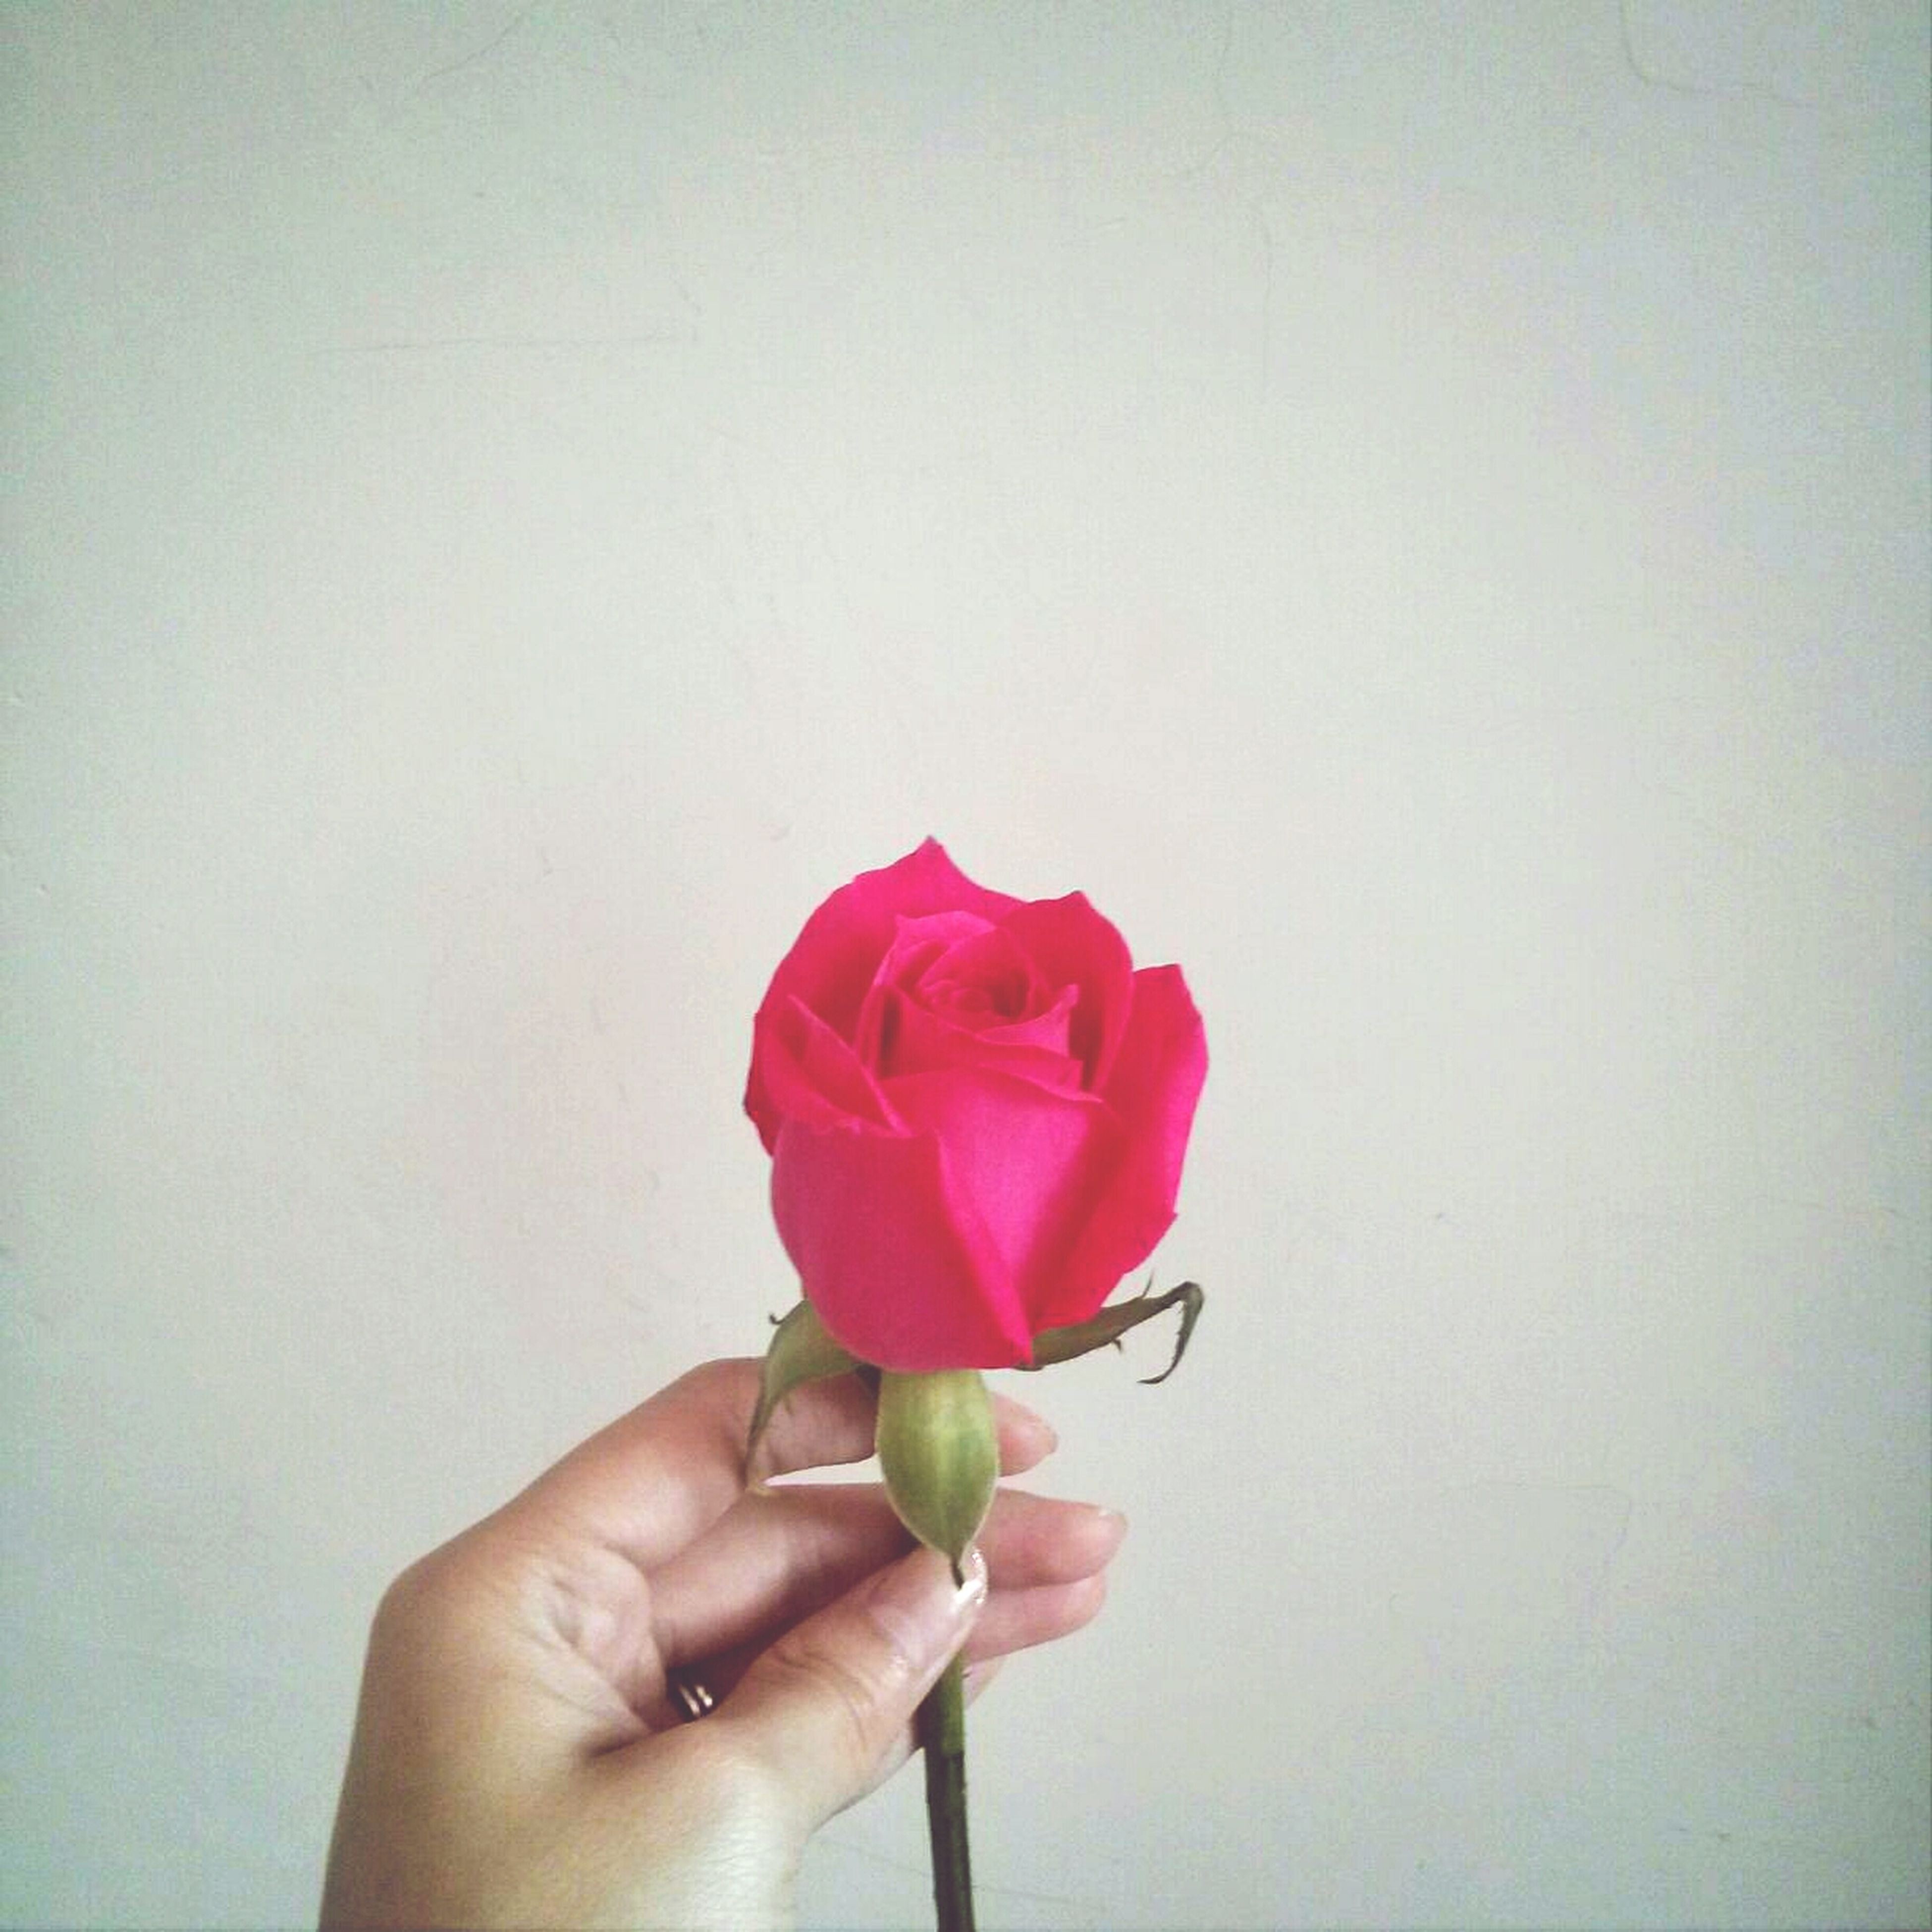 flower, person, holding, petal, fragility, flower head, studio shot, part of, freshness, cropped, close-up, rose - flower, single flower, copy space, wall - building feature, white background, stem